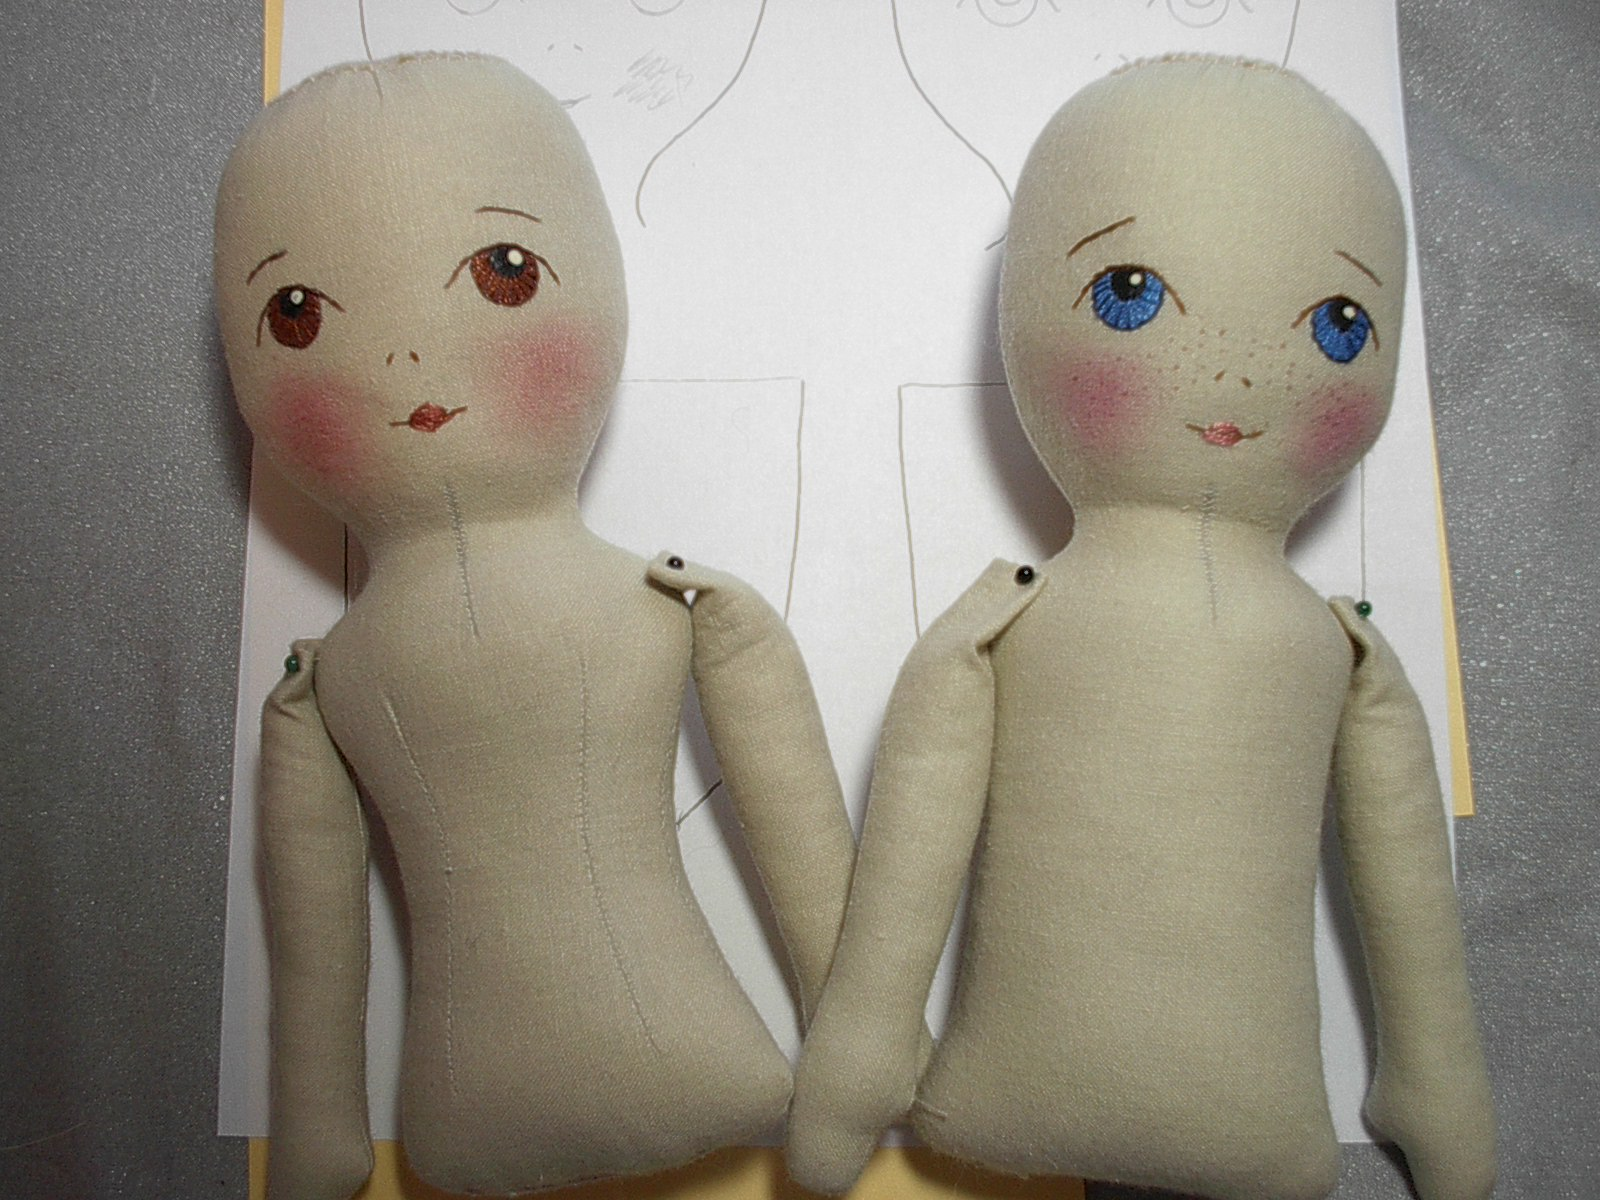 This is a picture of Ridiculous Free Printable Doll Faces